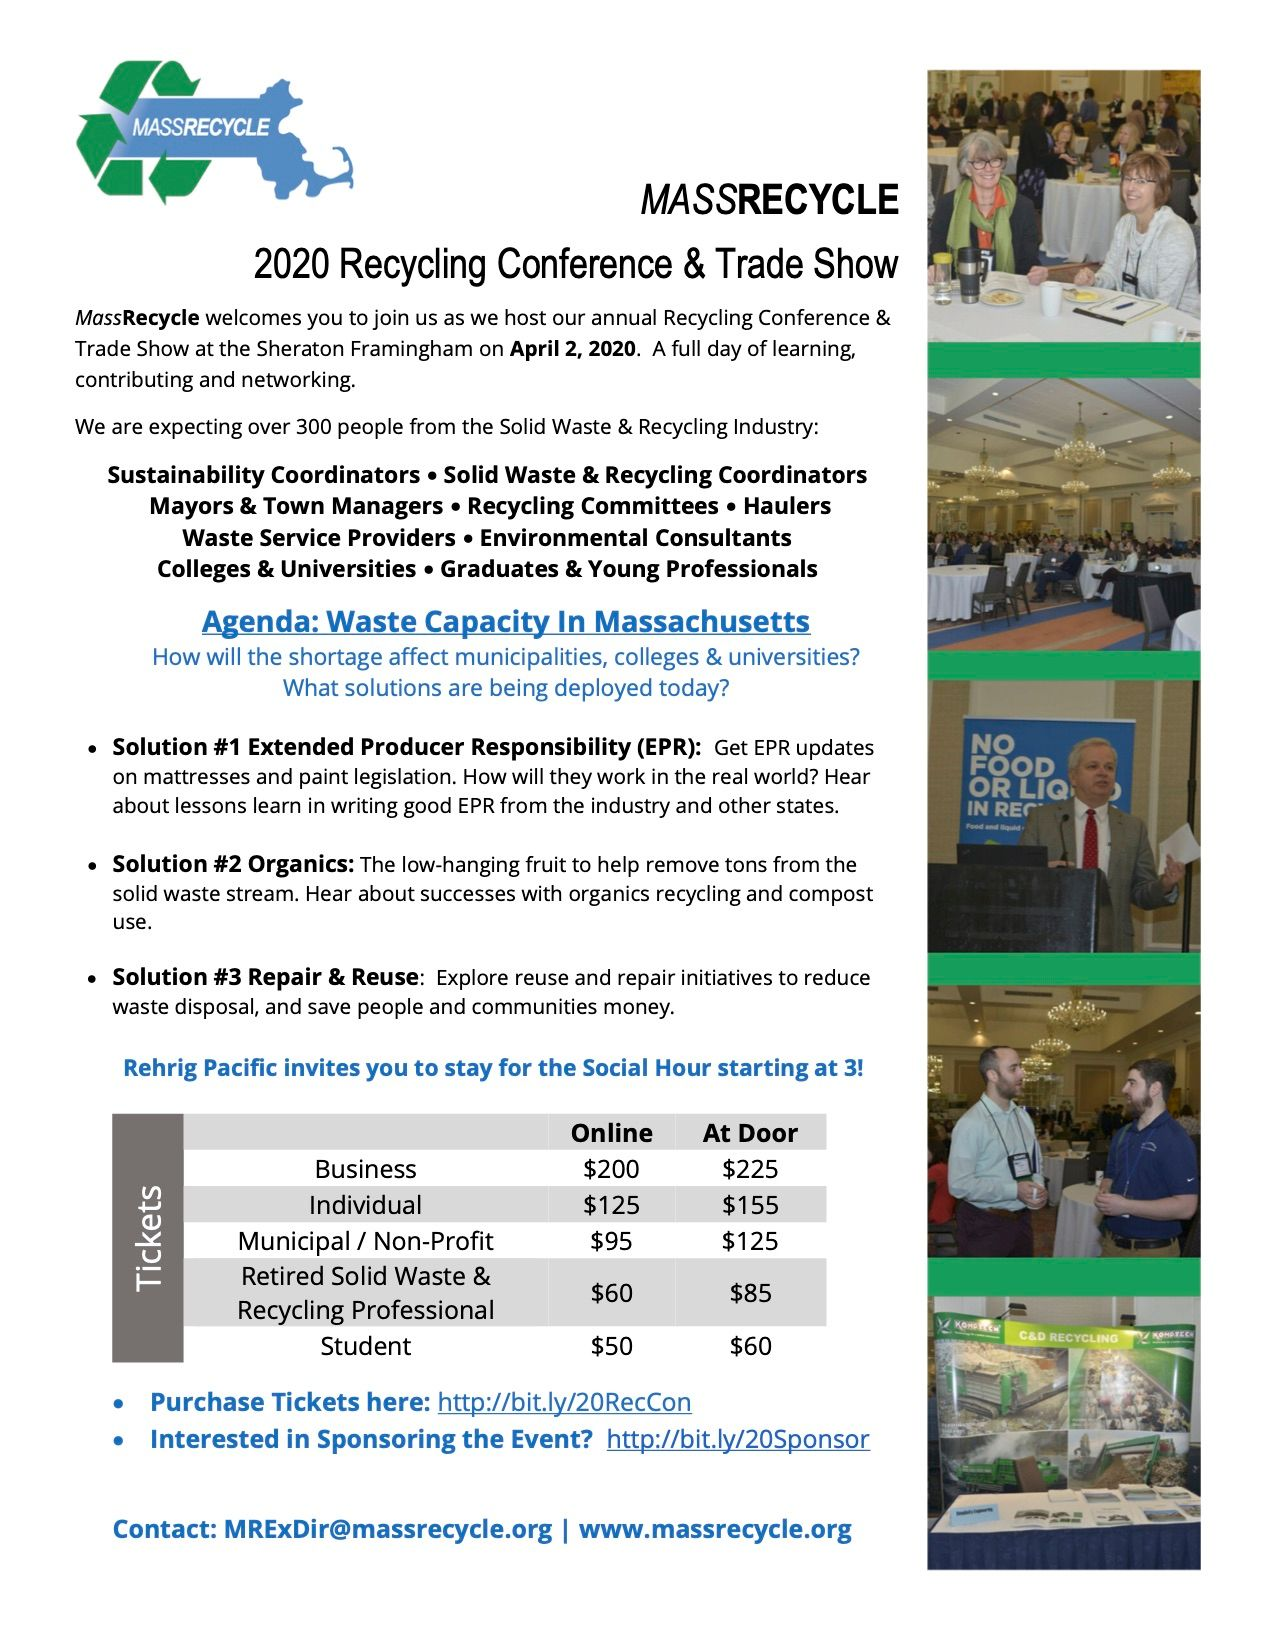 MassRecycle 2020 Recycling Conference & Trade Show